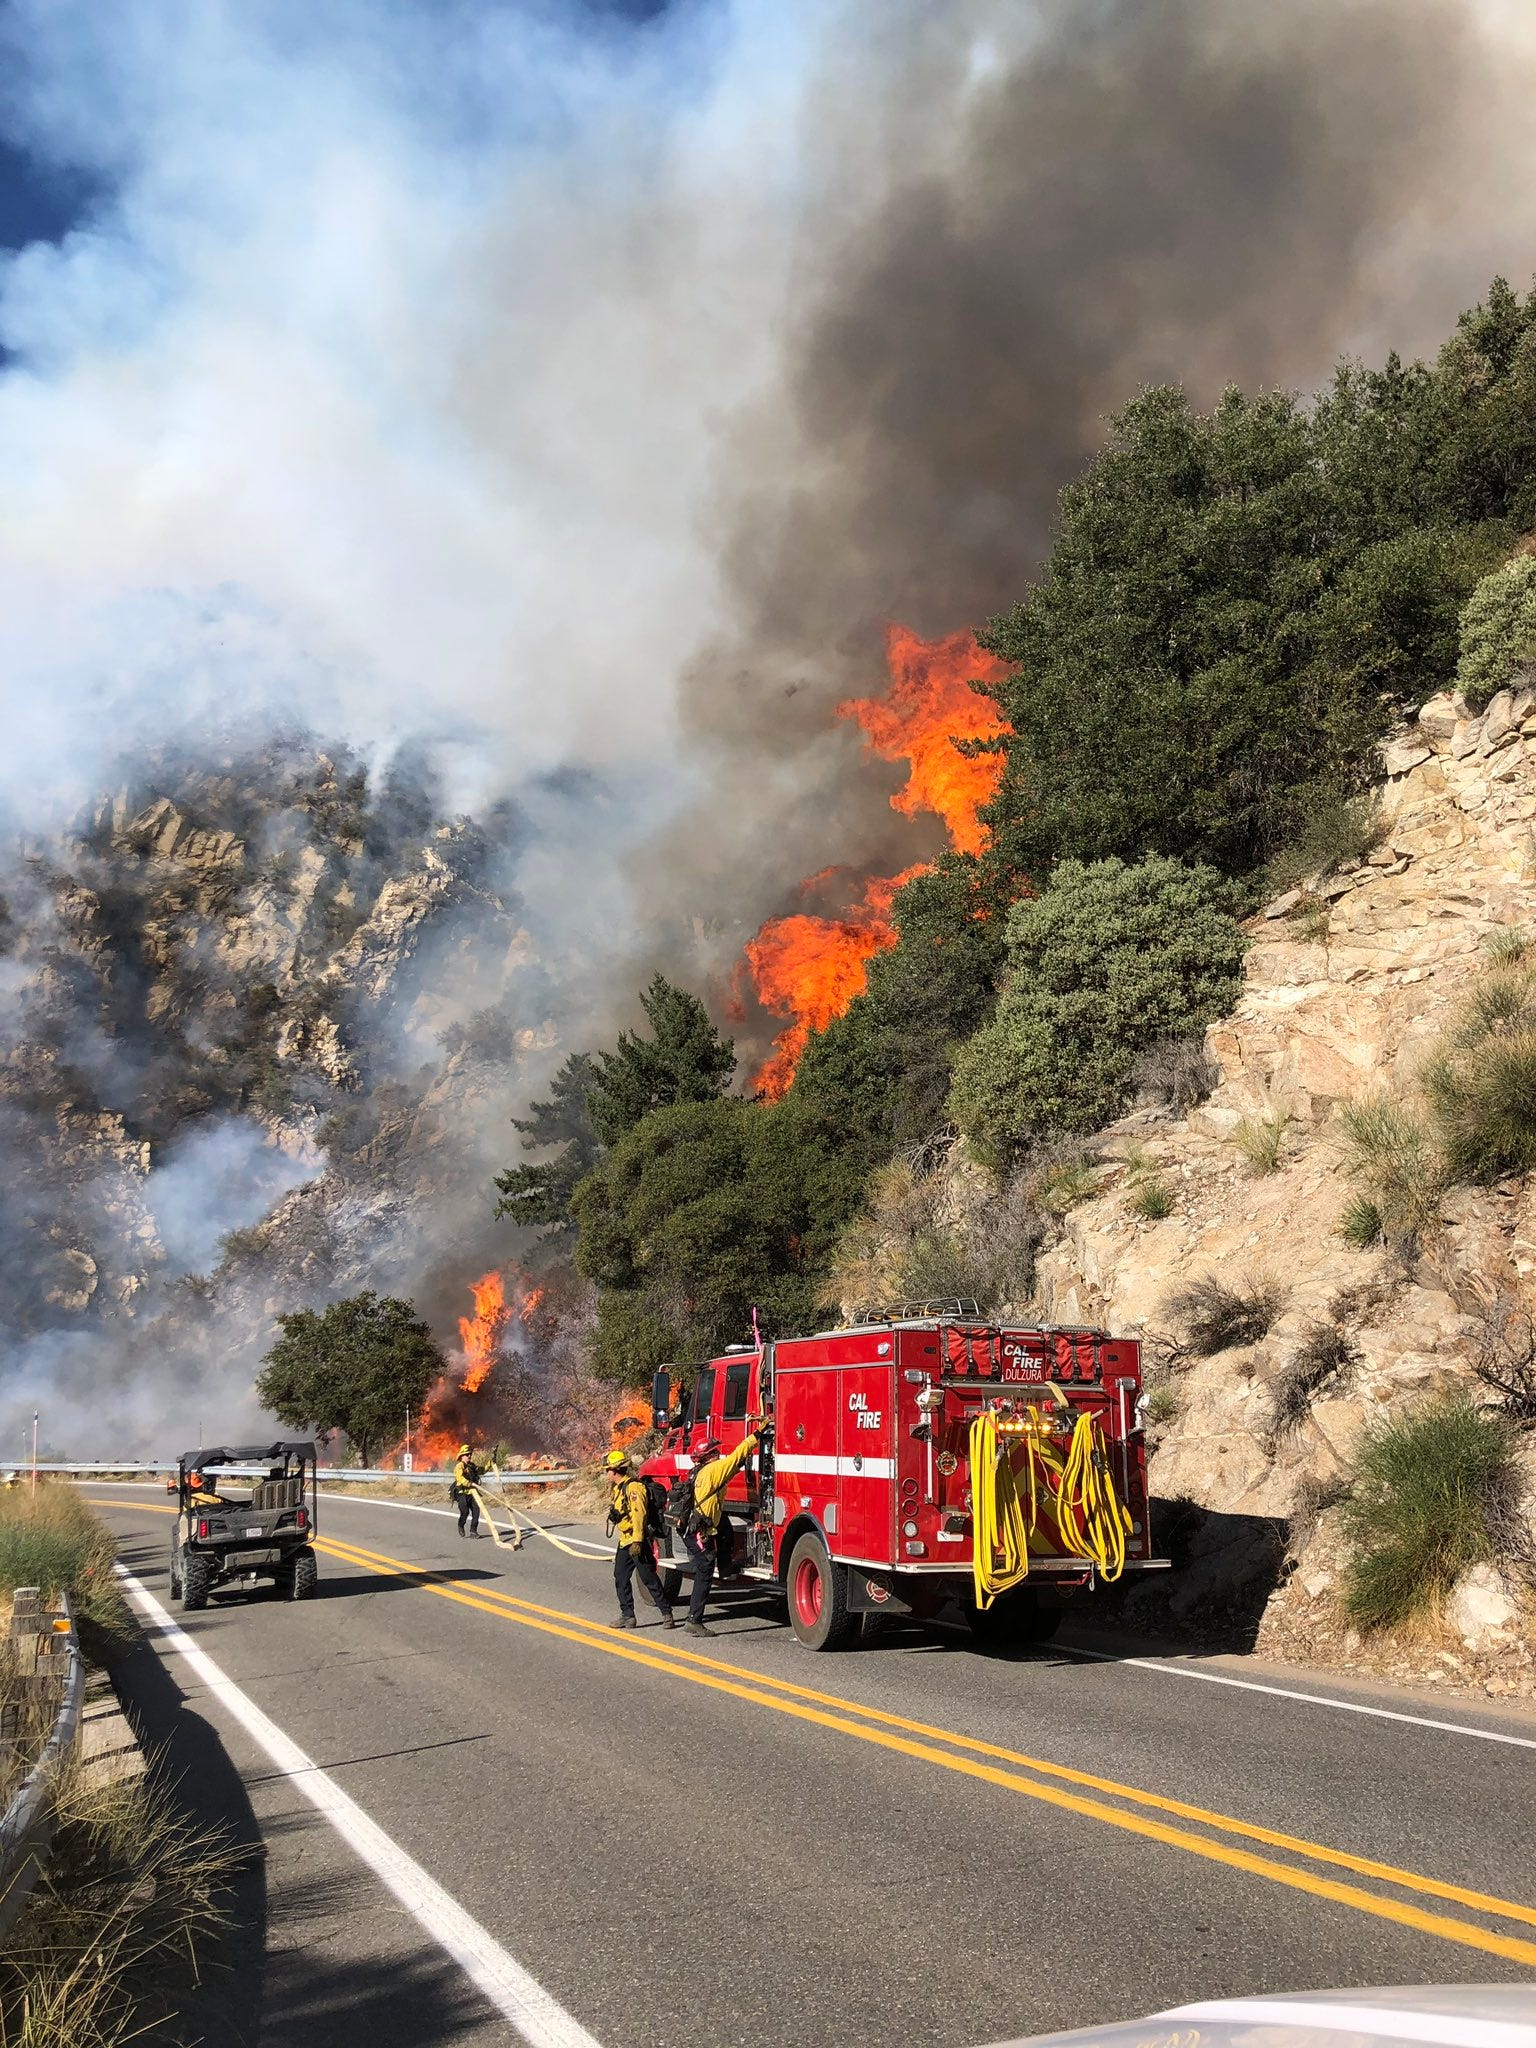 Couple charged with involuntary manslaughter in Southern California fire sparked by gender reveal